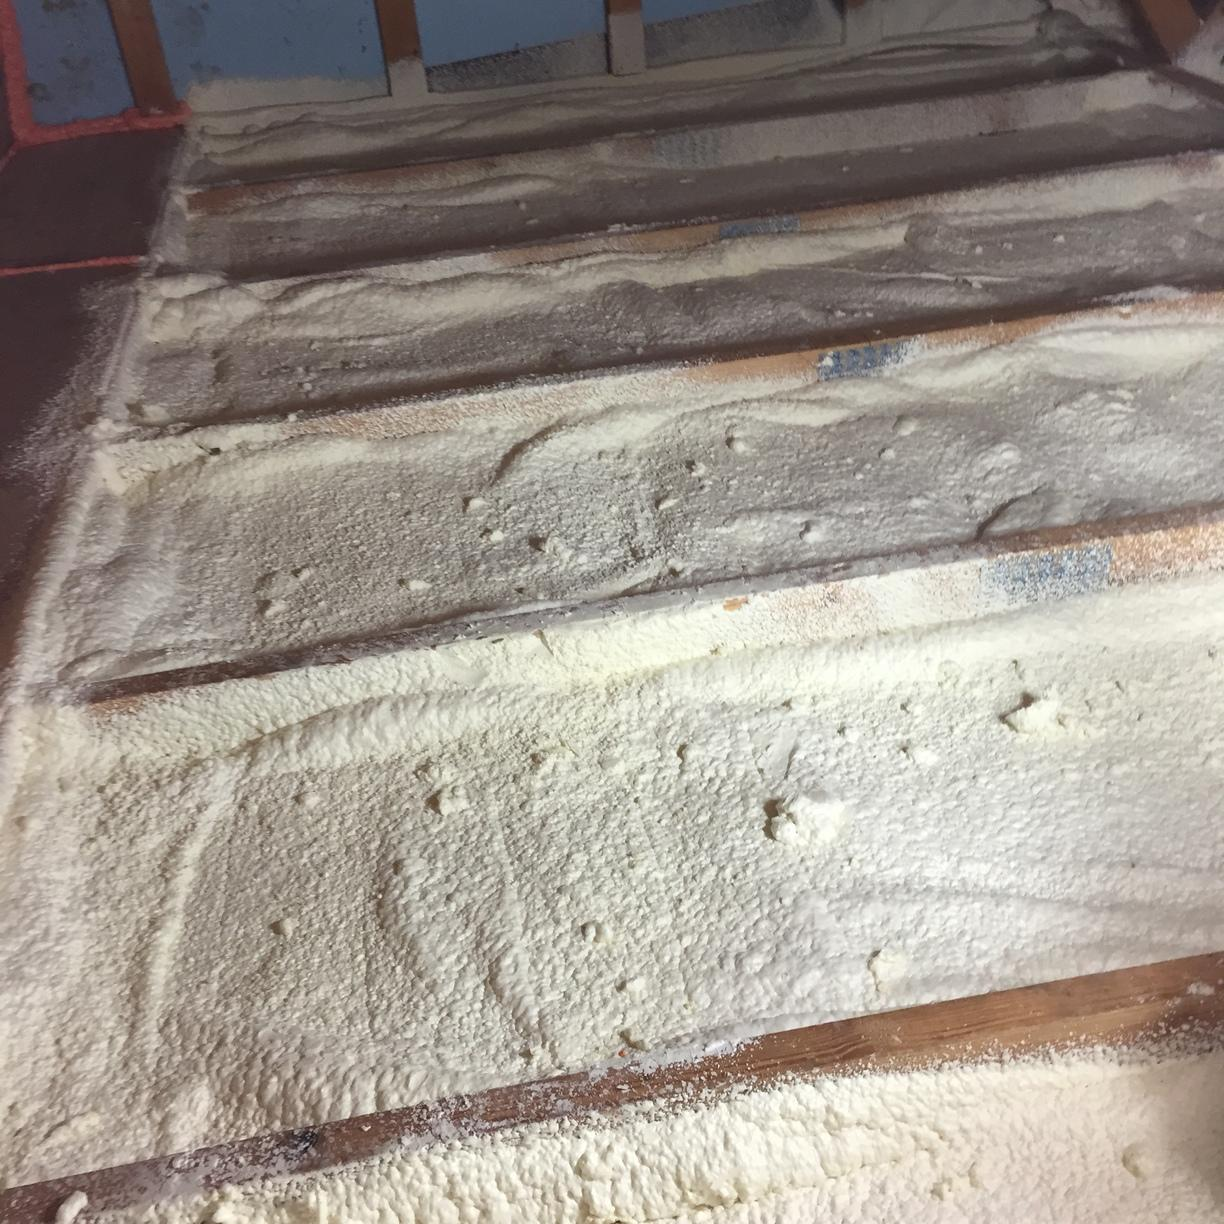 Tongue and groove ceiling to spray foam insulation, Bradford Woods, PA - After Photo